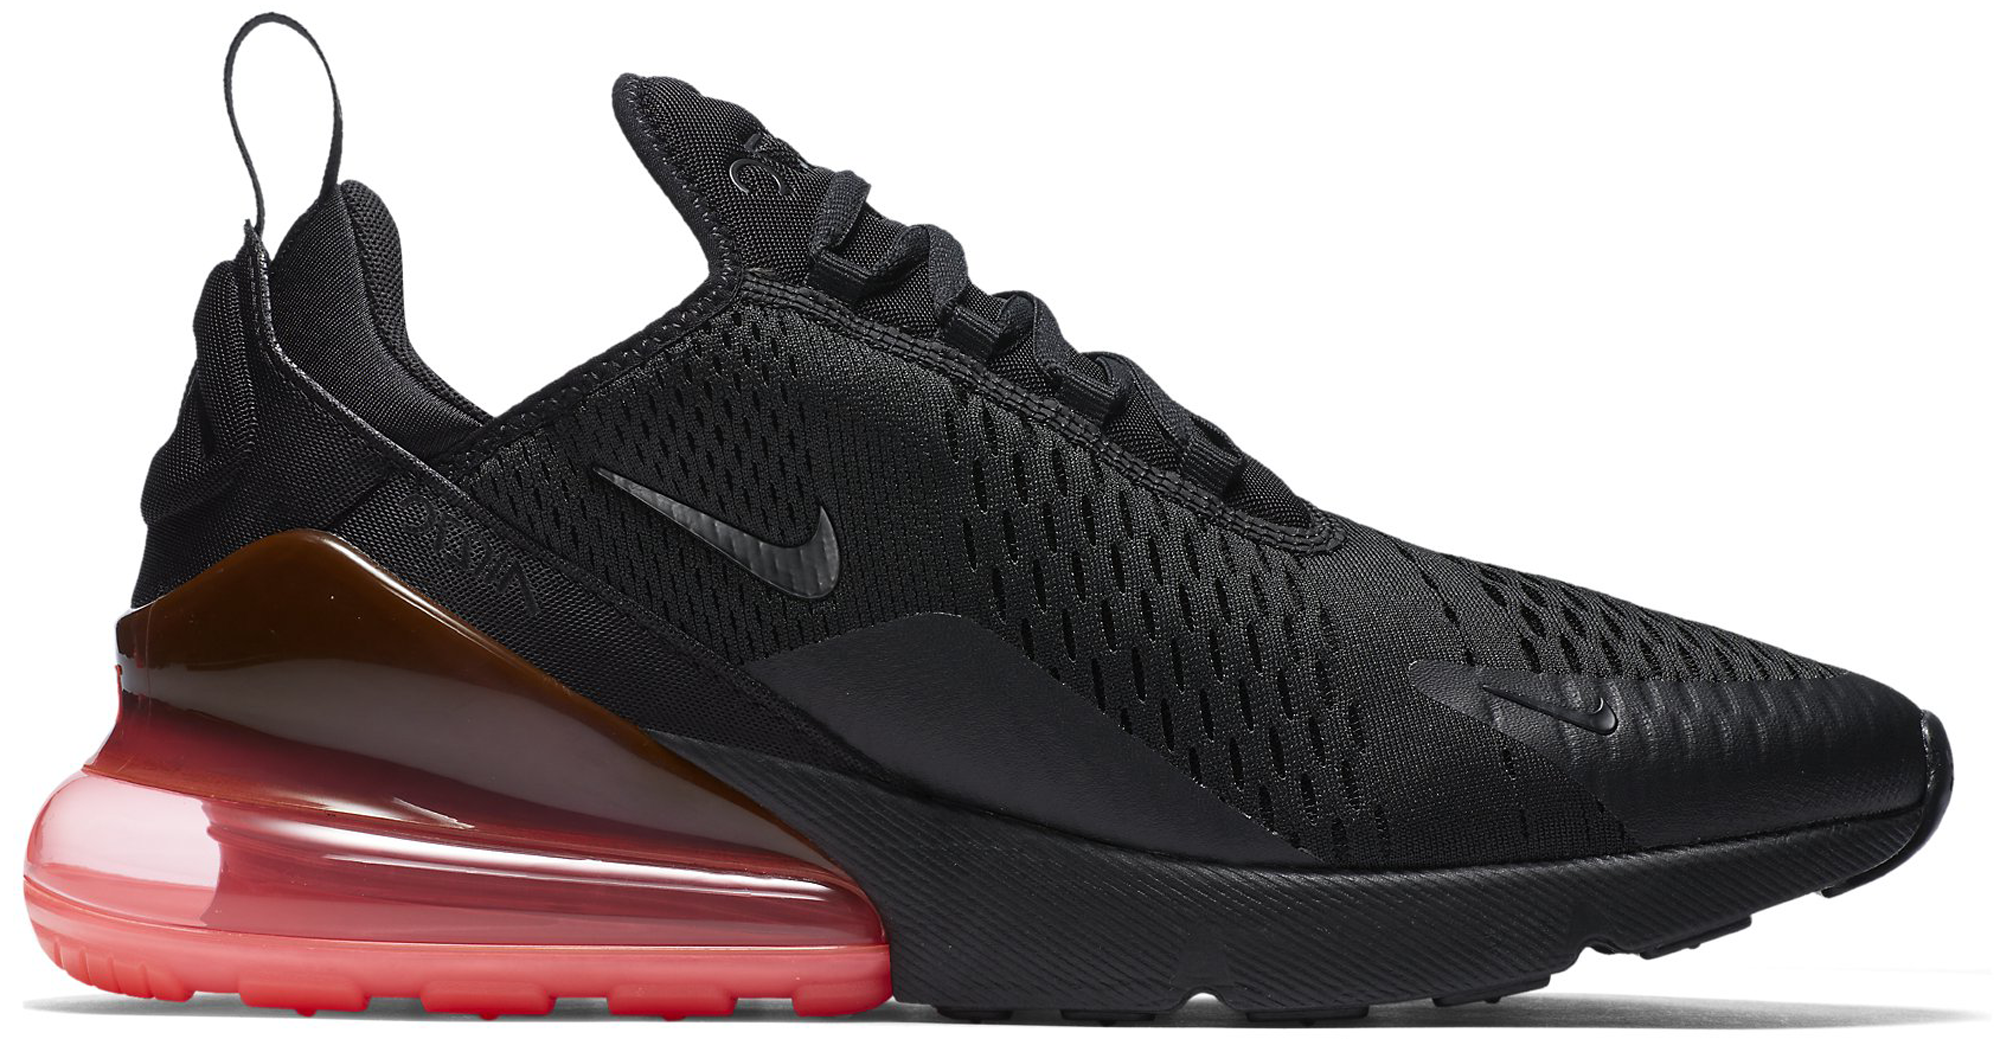 Nike 270 Air Max. nike air max 270 hot punch ah8050 010. the nike ... 9c2ddc8ef